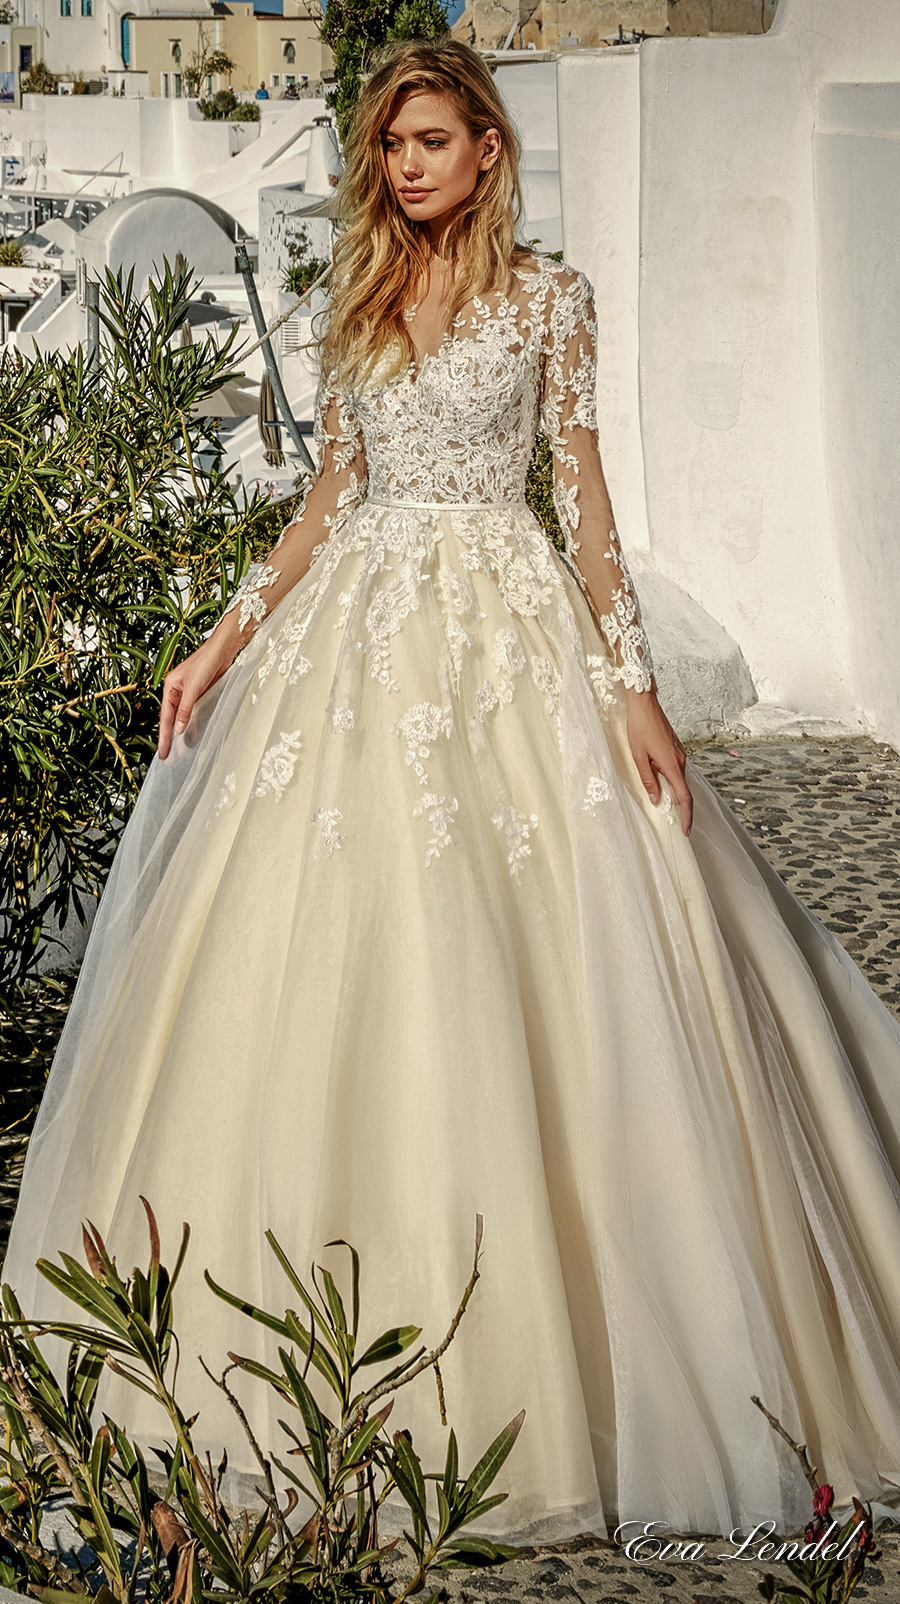 eva lendel 2017 bridal long sleeves v neck heavily embellished bodice romantic princess ivory a line wedding dress illusion lace back chapel train (allen) mv